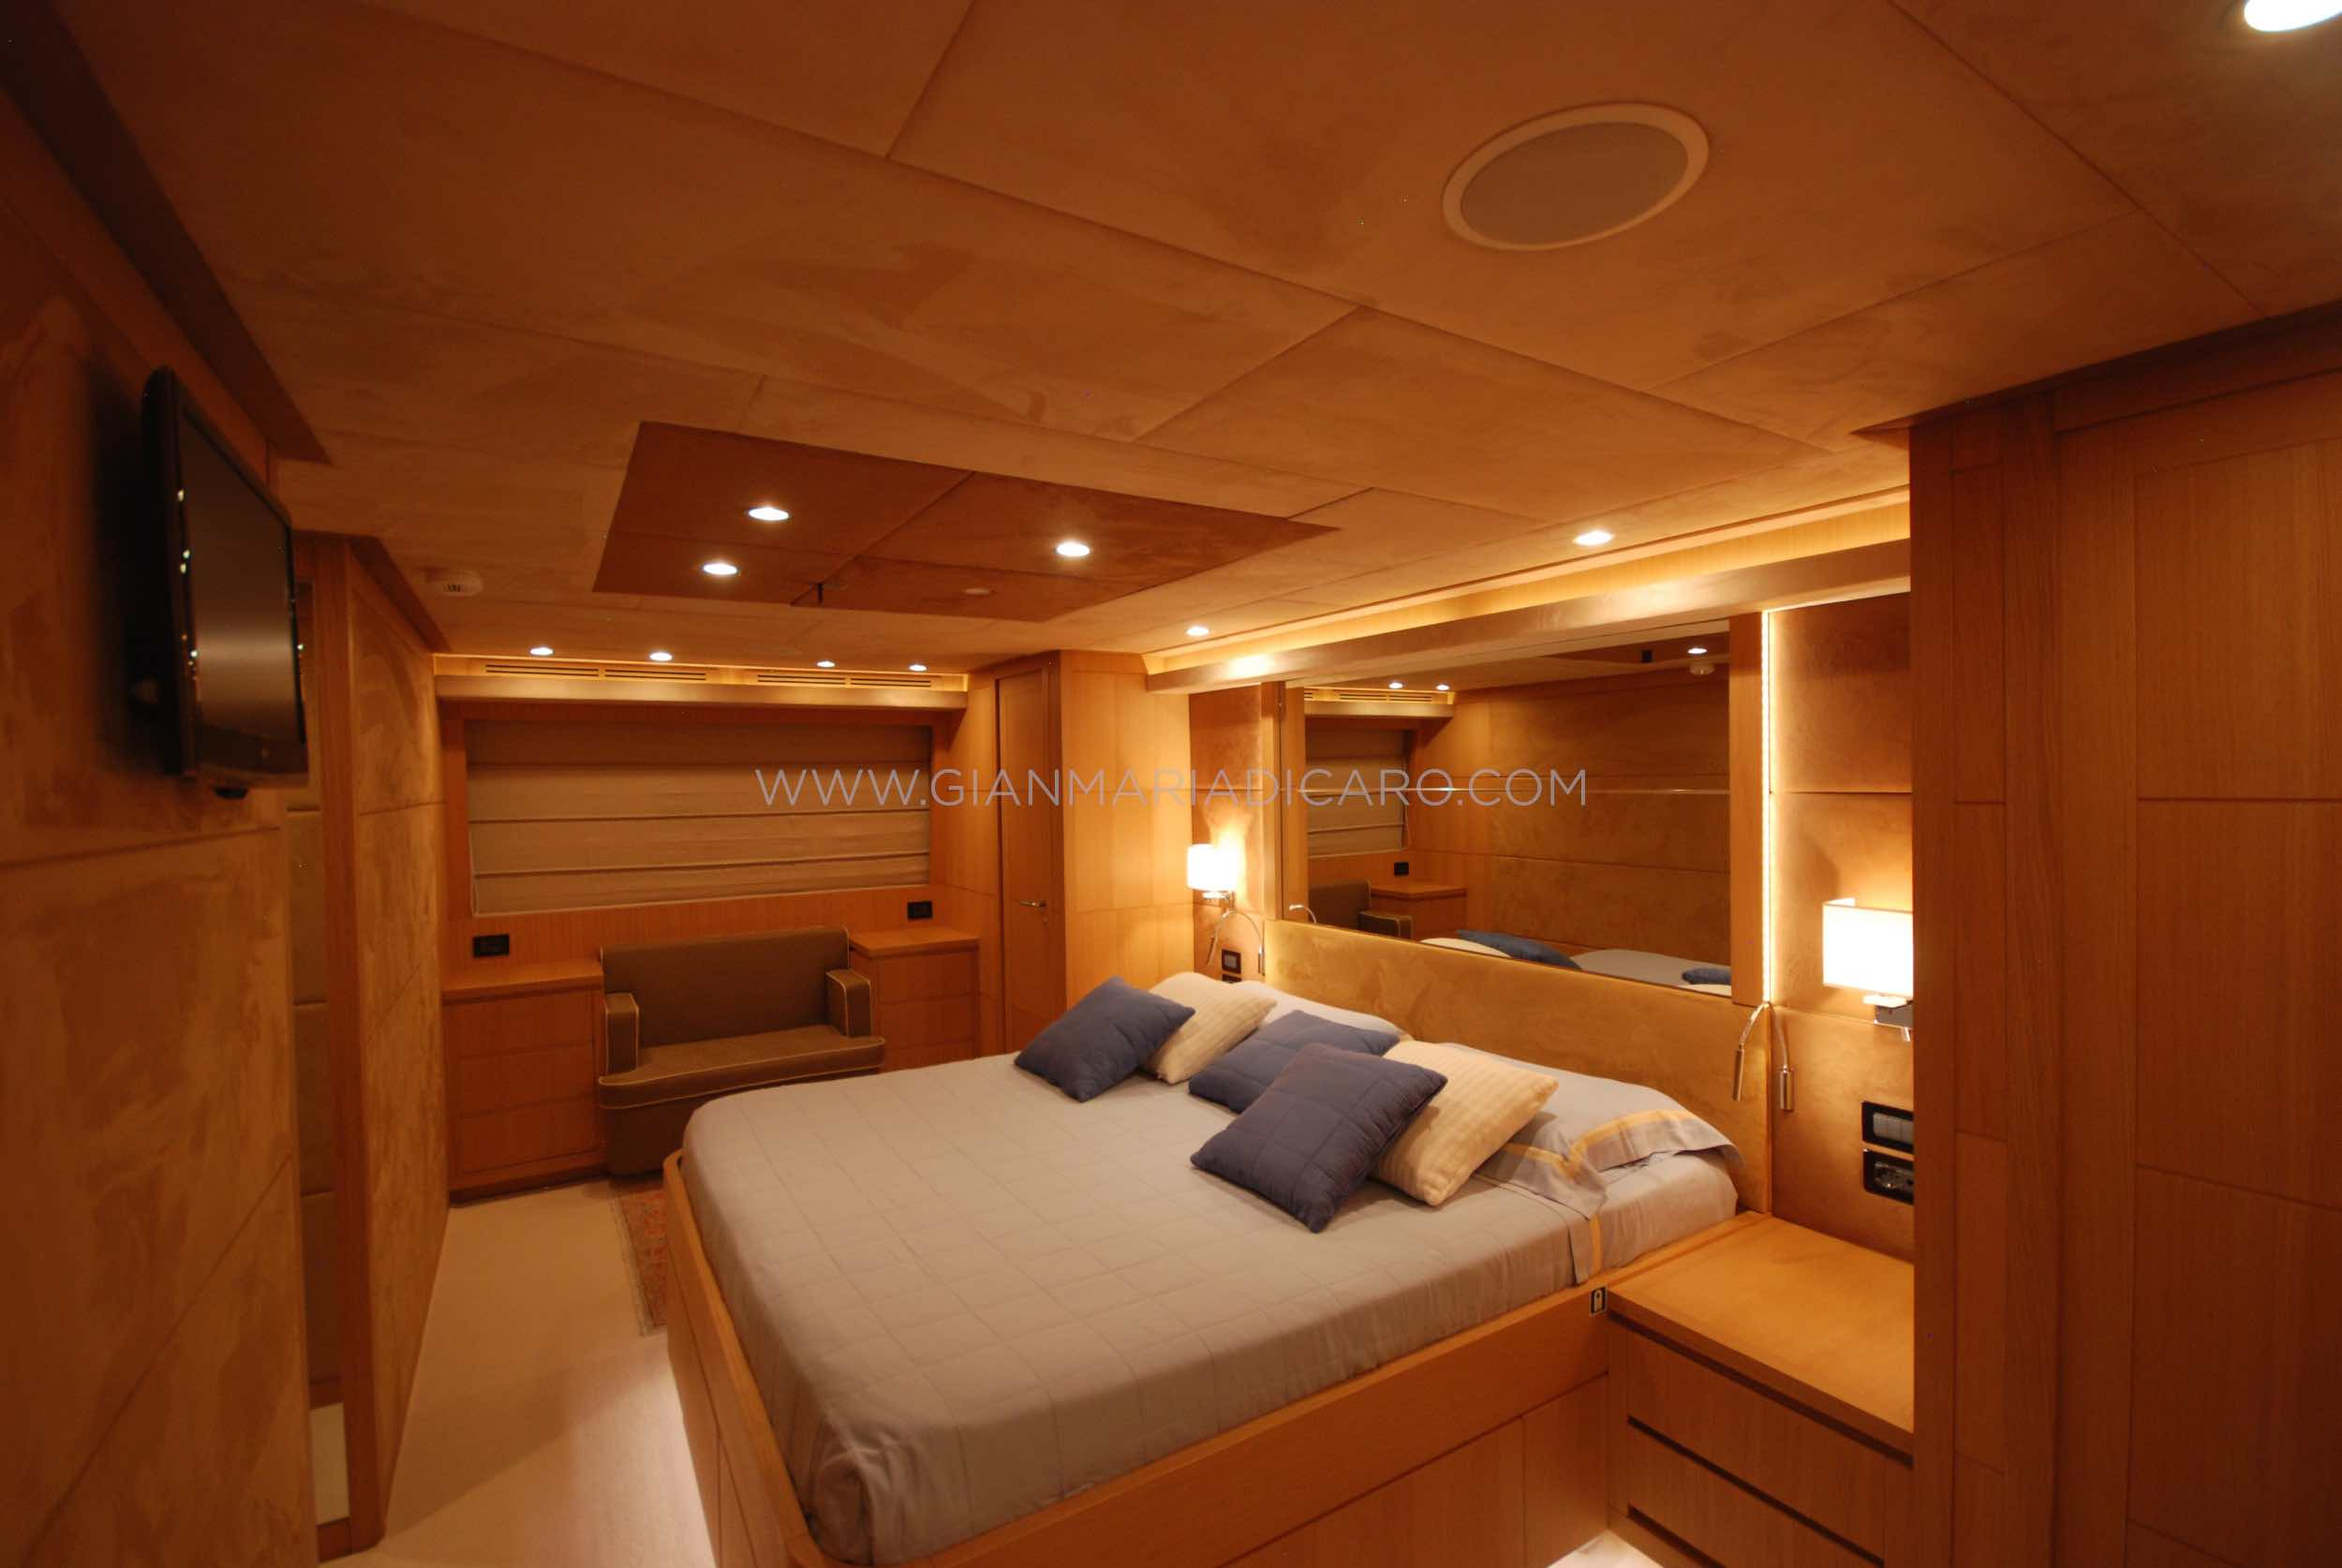 emys-yacht-22-unica-for-sale-228.jpg